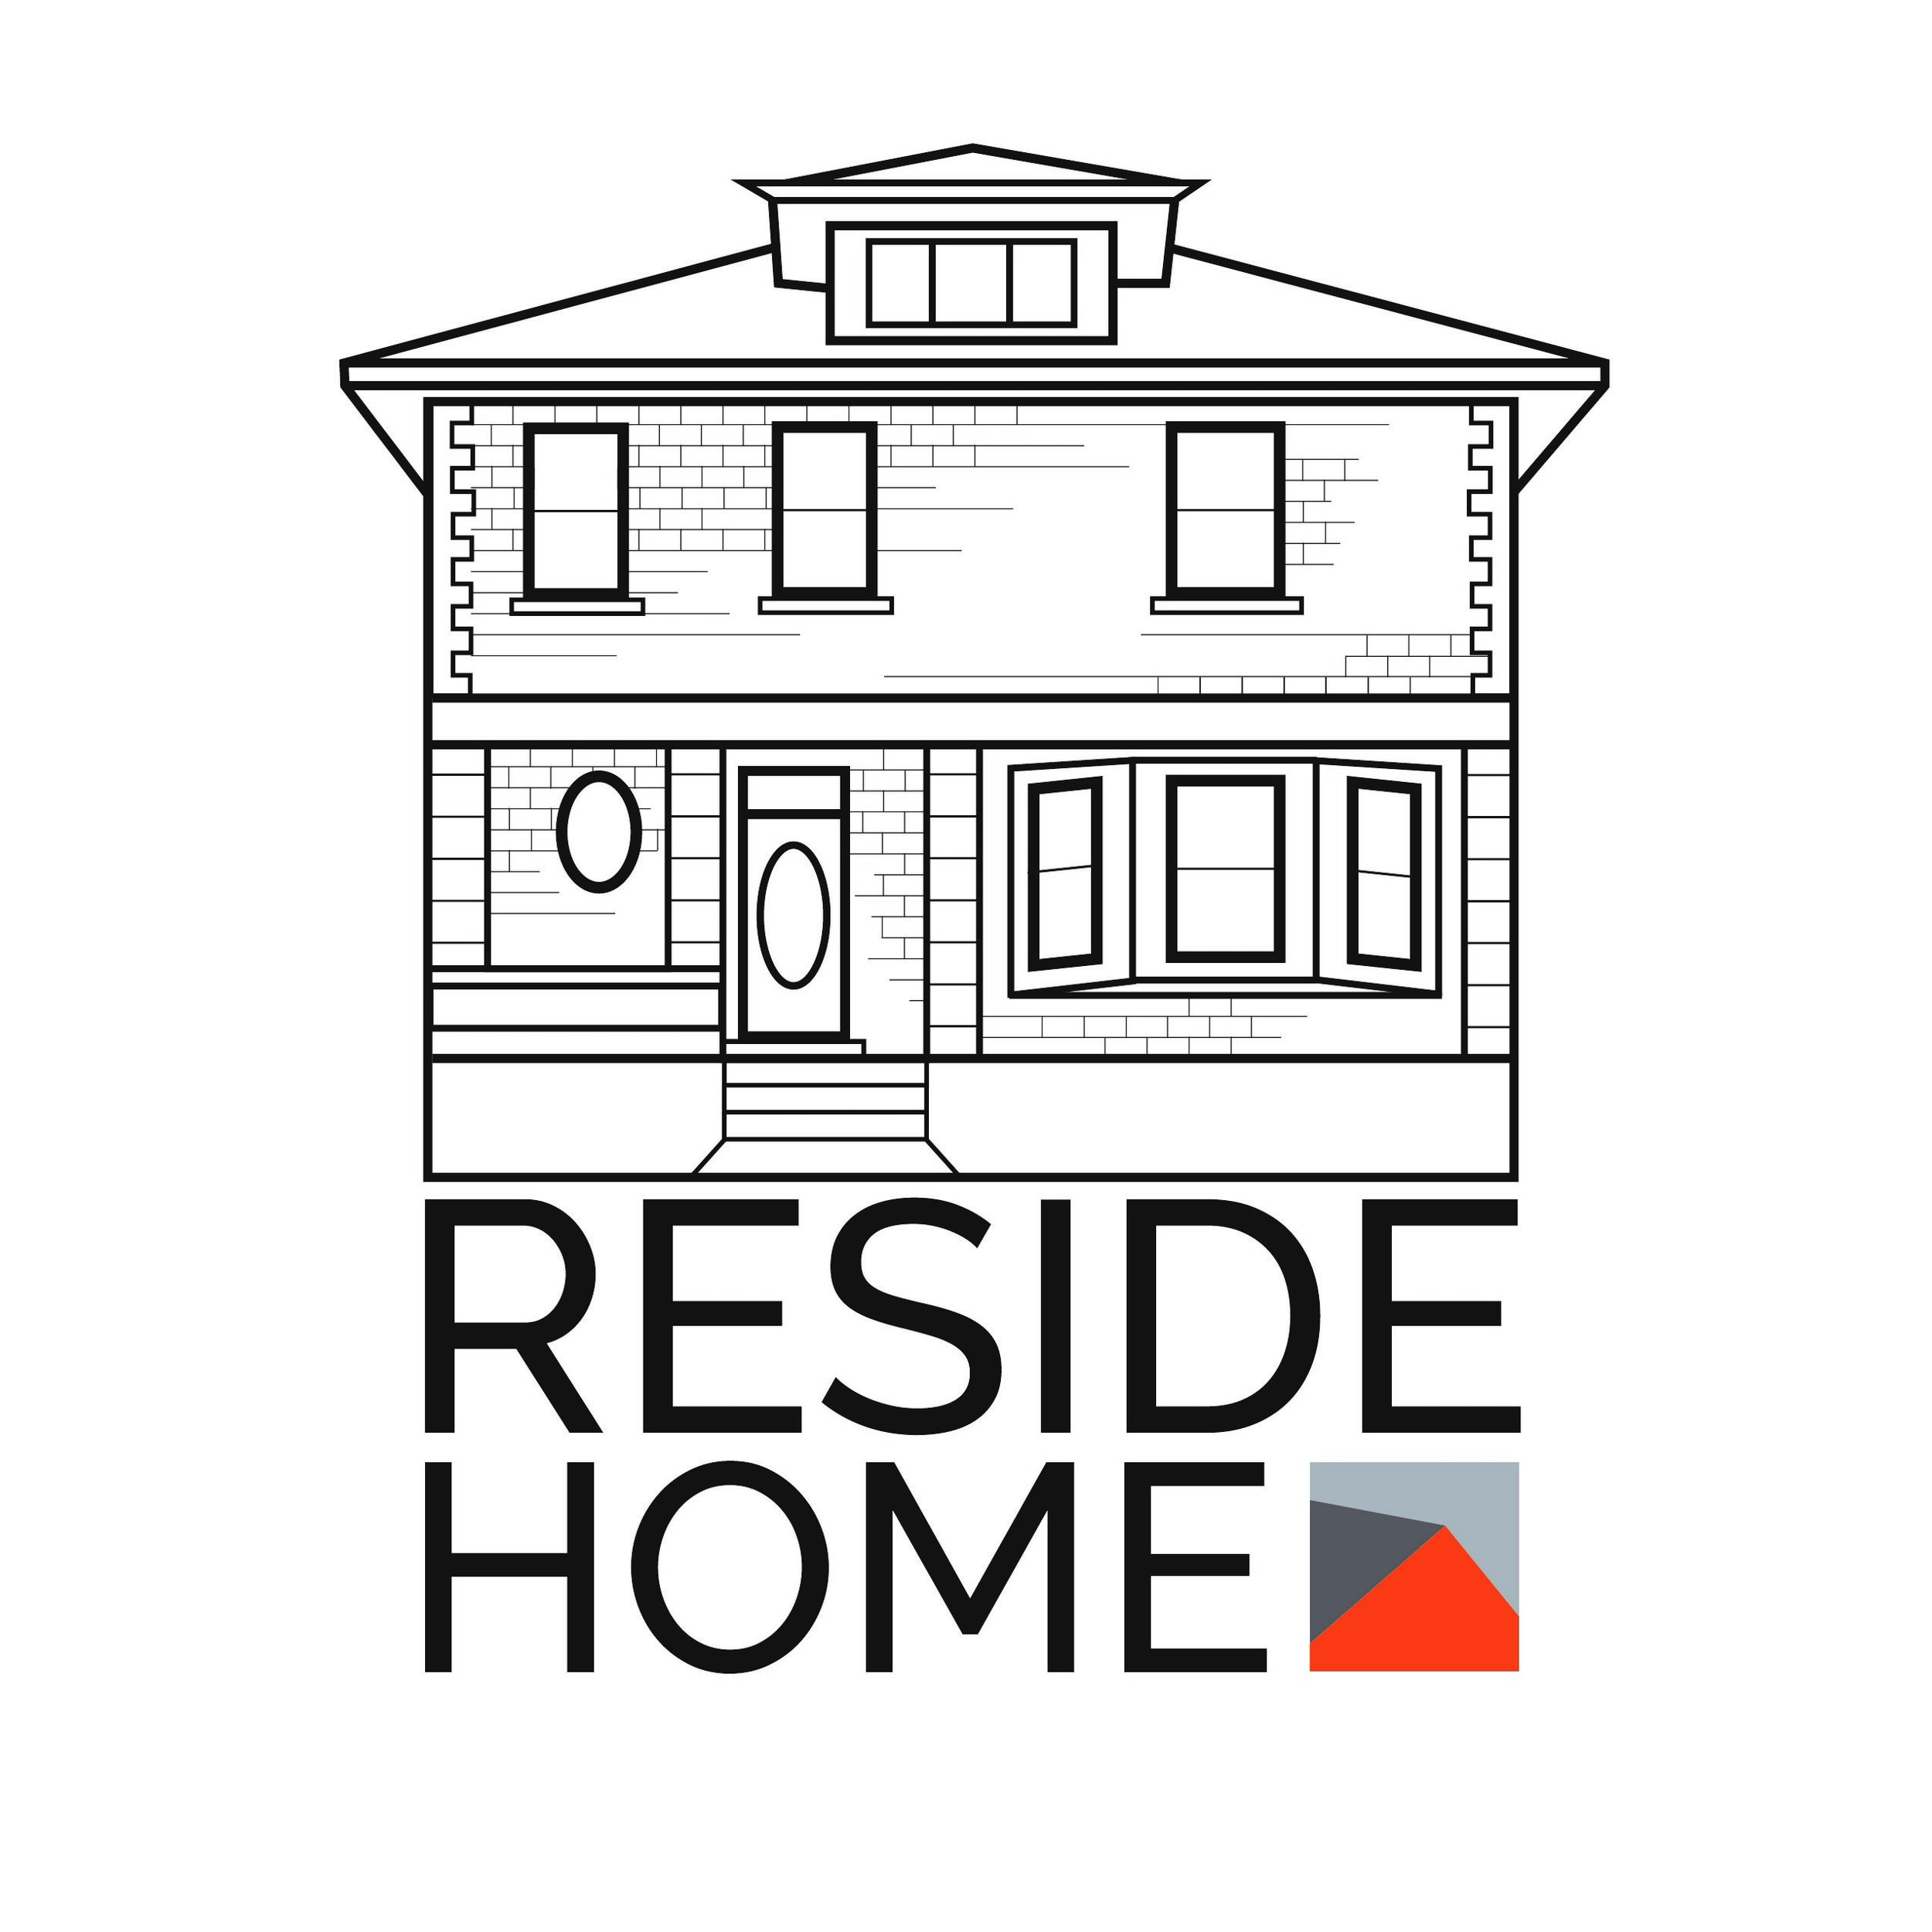 Jeff & Chris from Reside Home have an incredibly beautiful store and a kind and helpful staff. We love them!